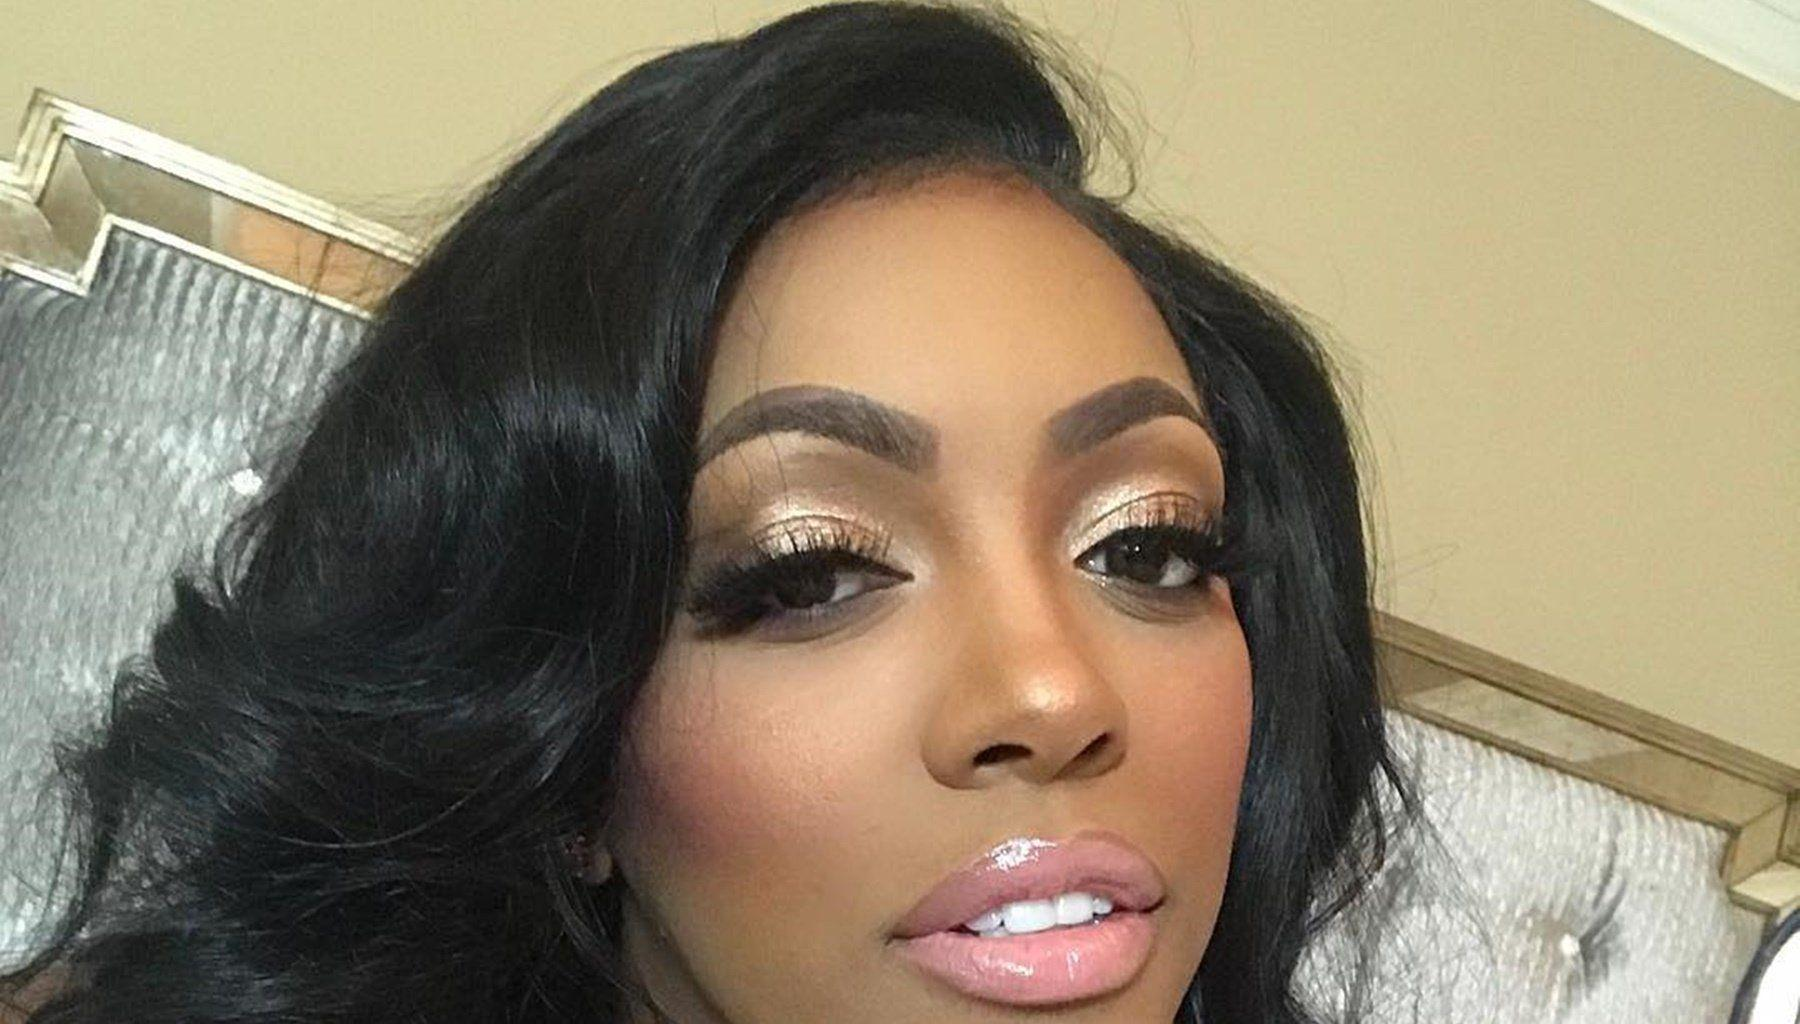 Porsha Williams Addresses The Modern Day Lynchings - Check Out Her Terrible Post